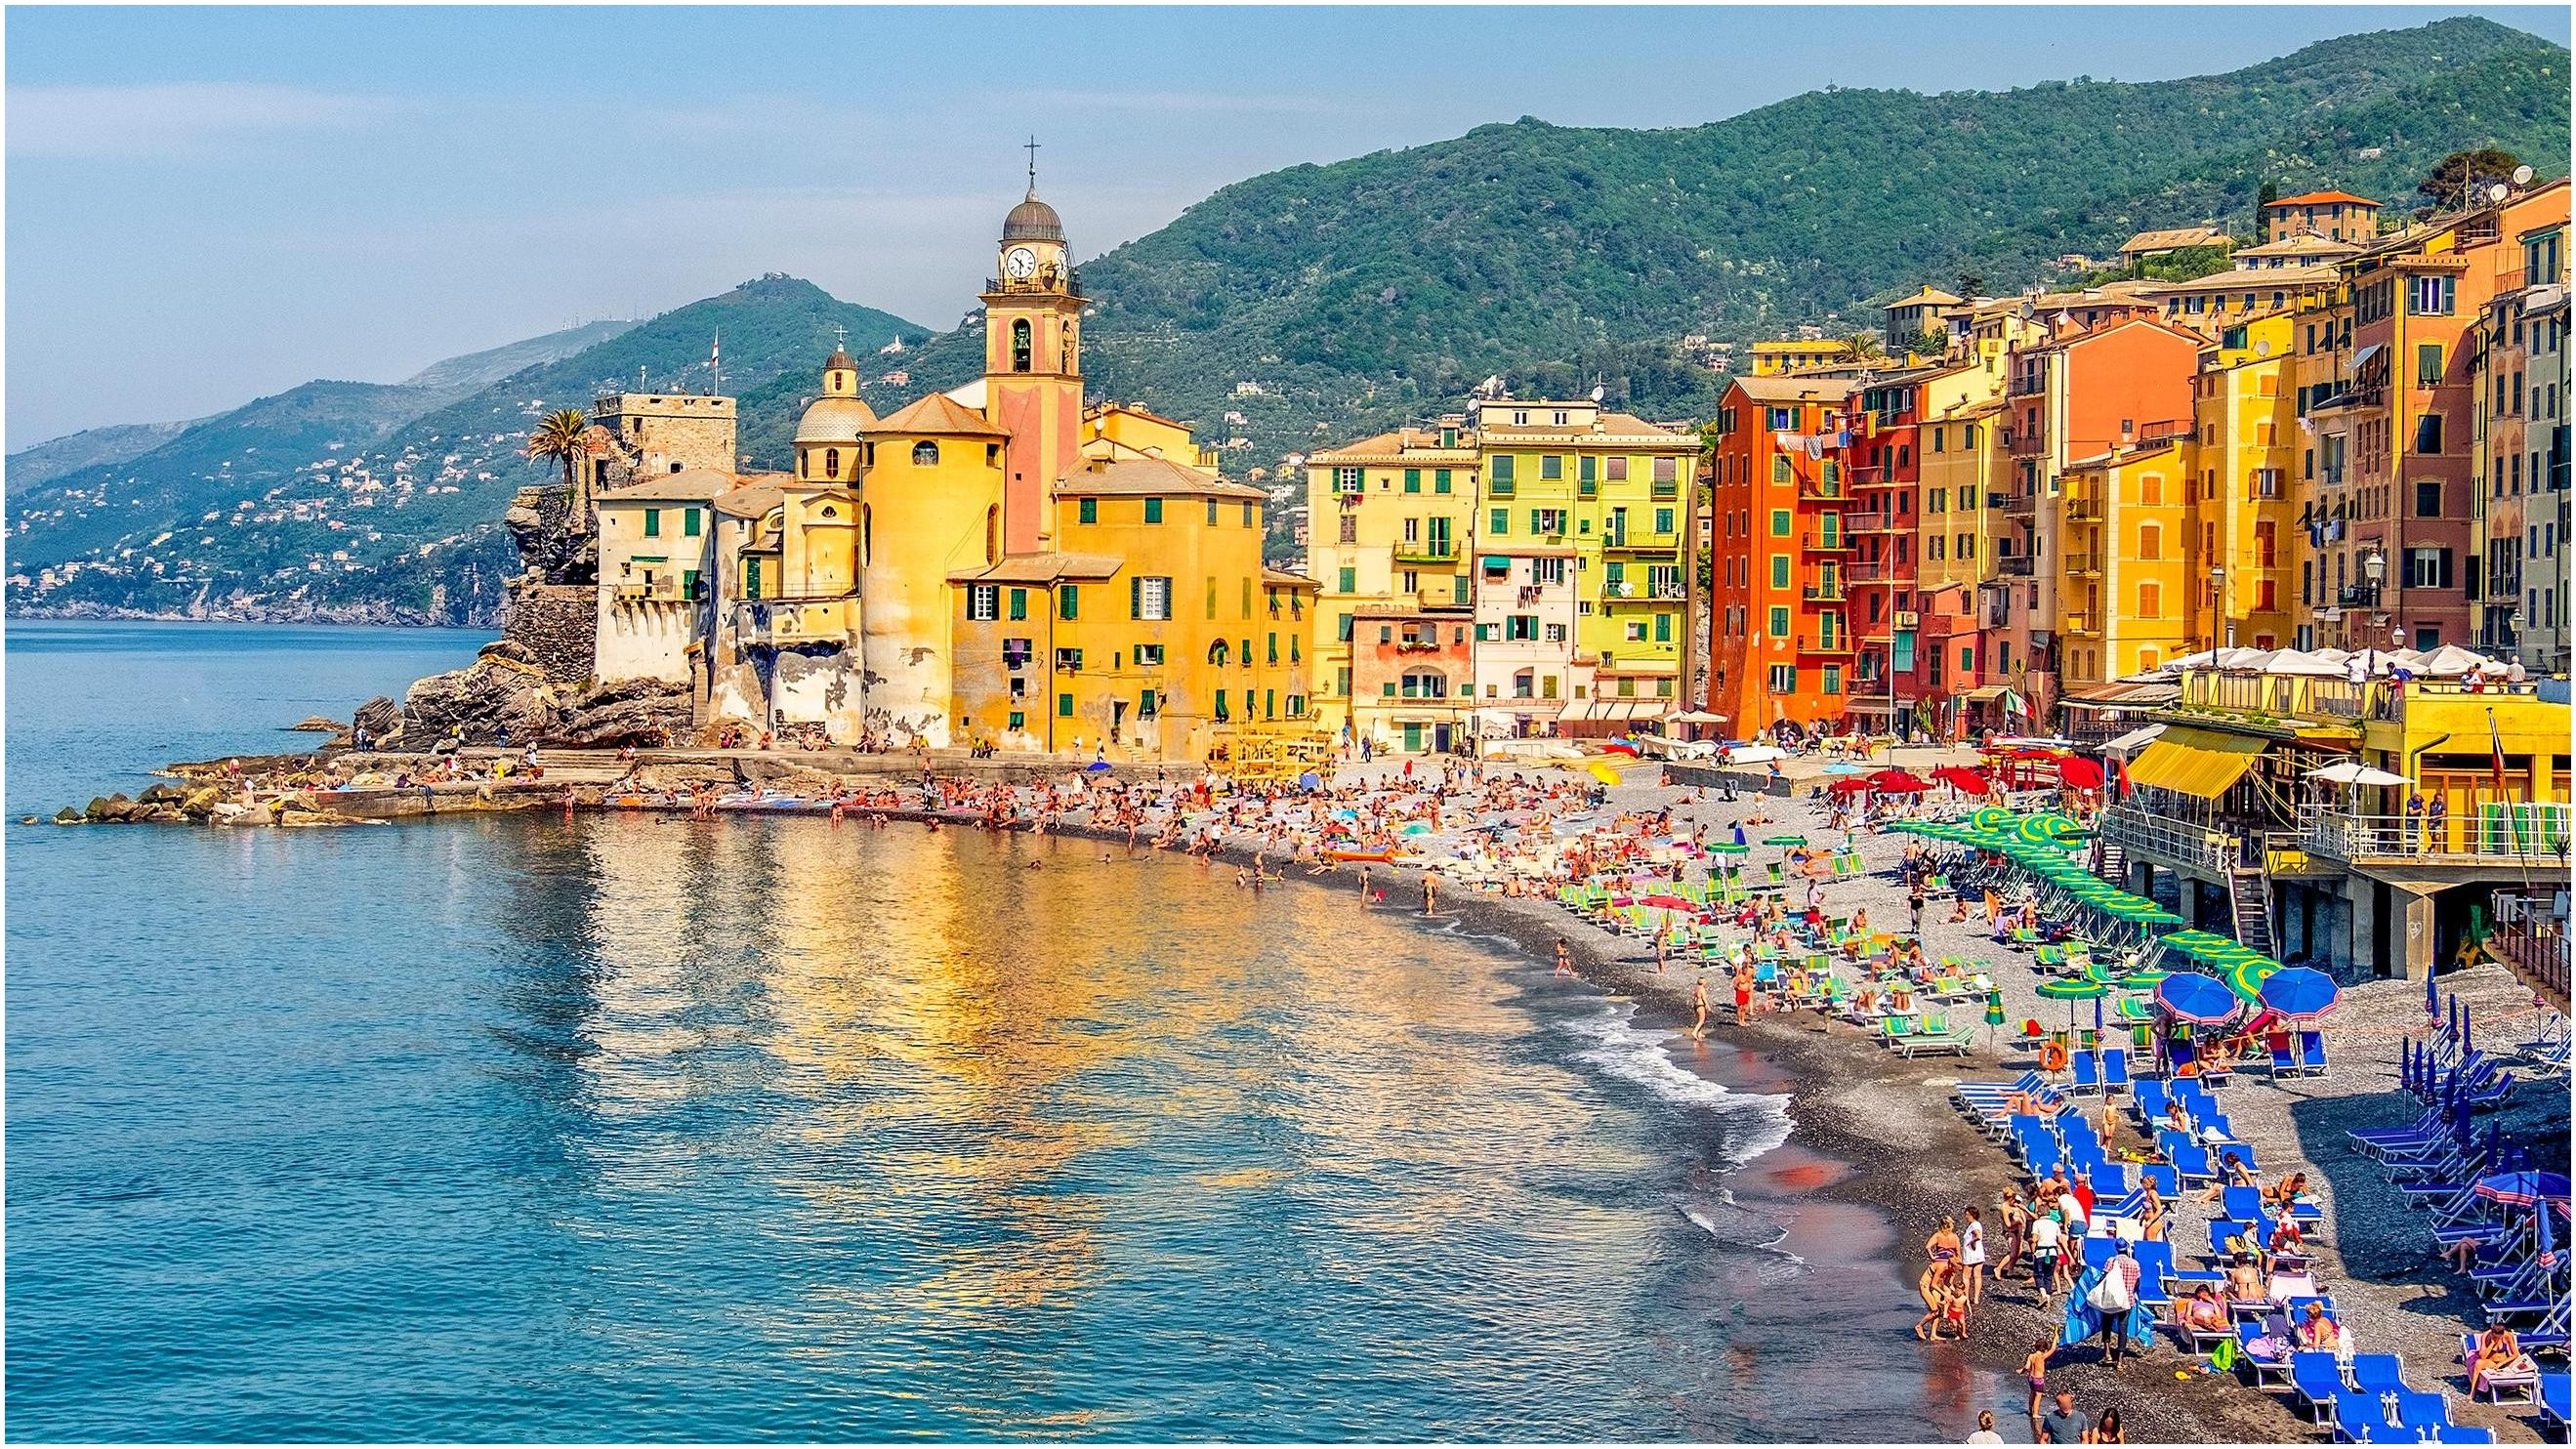 We d love to visit a quiet Italian town by the sea in September